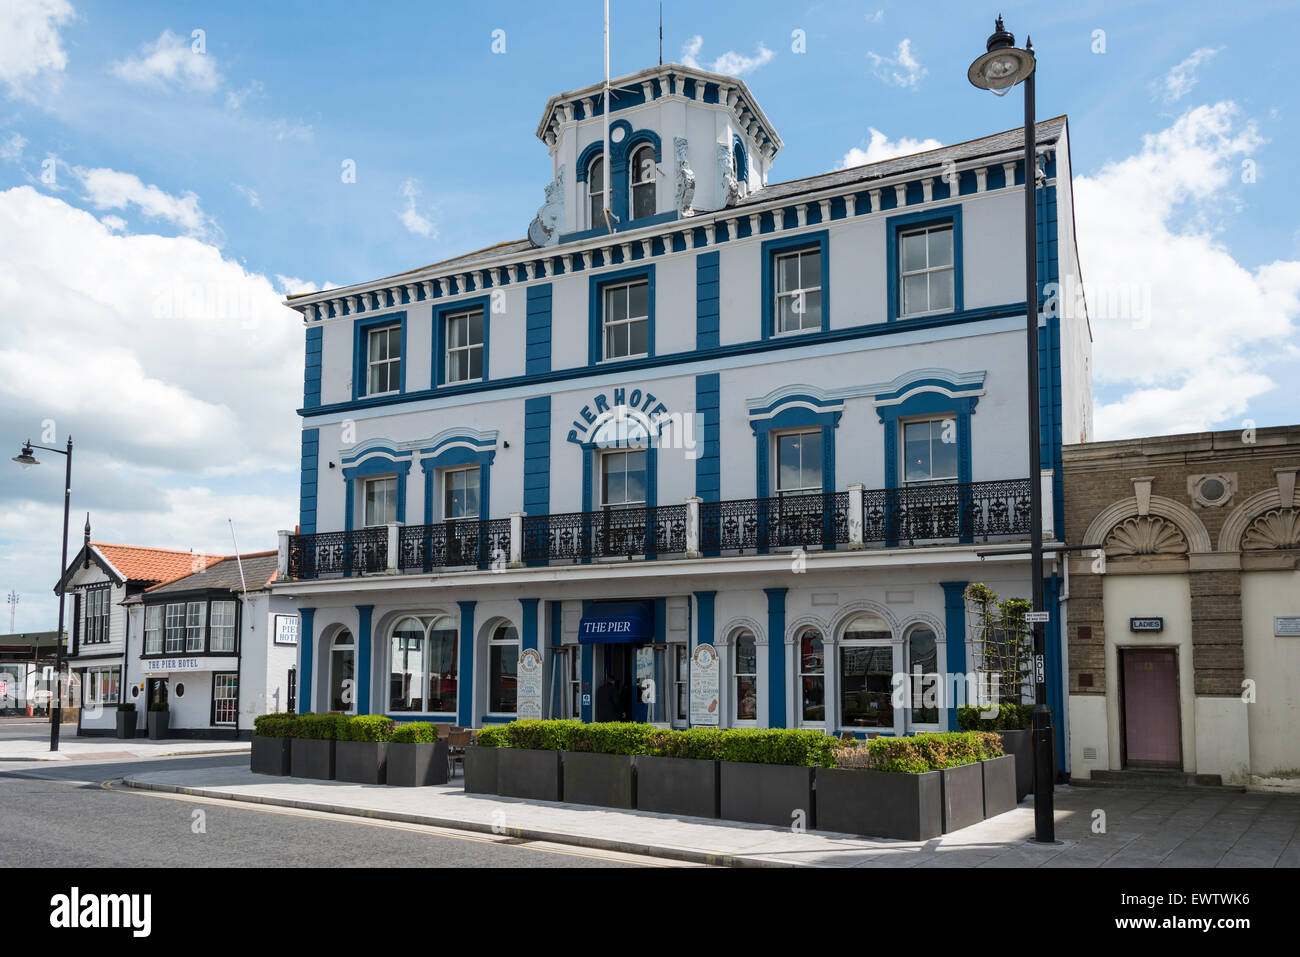 The Pier Hotel, The Quay, Harwich, Essex, England, United Kingdom - Stock Image